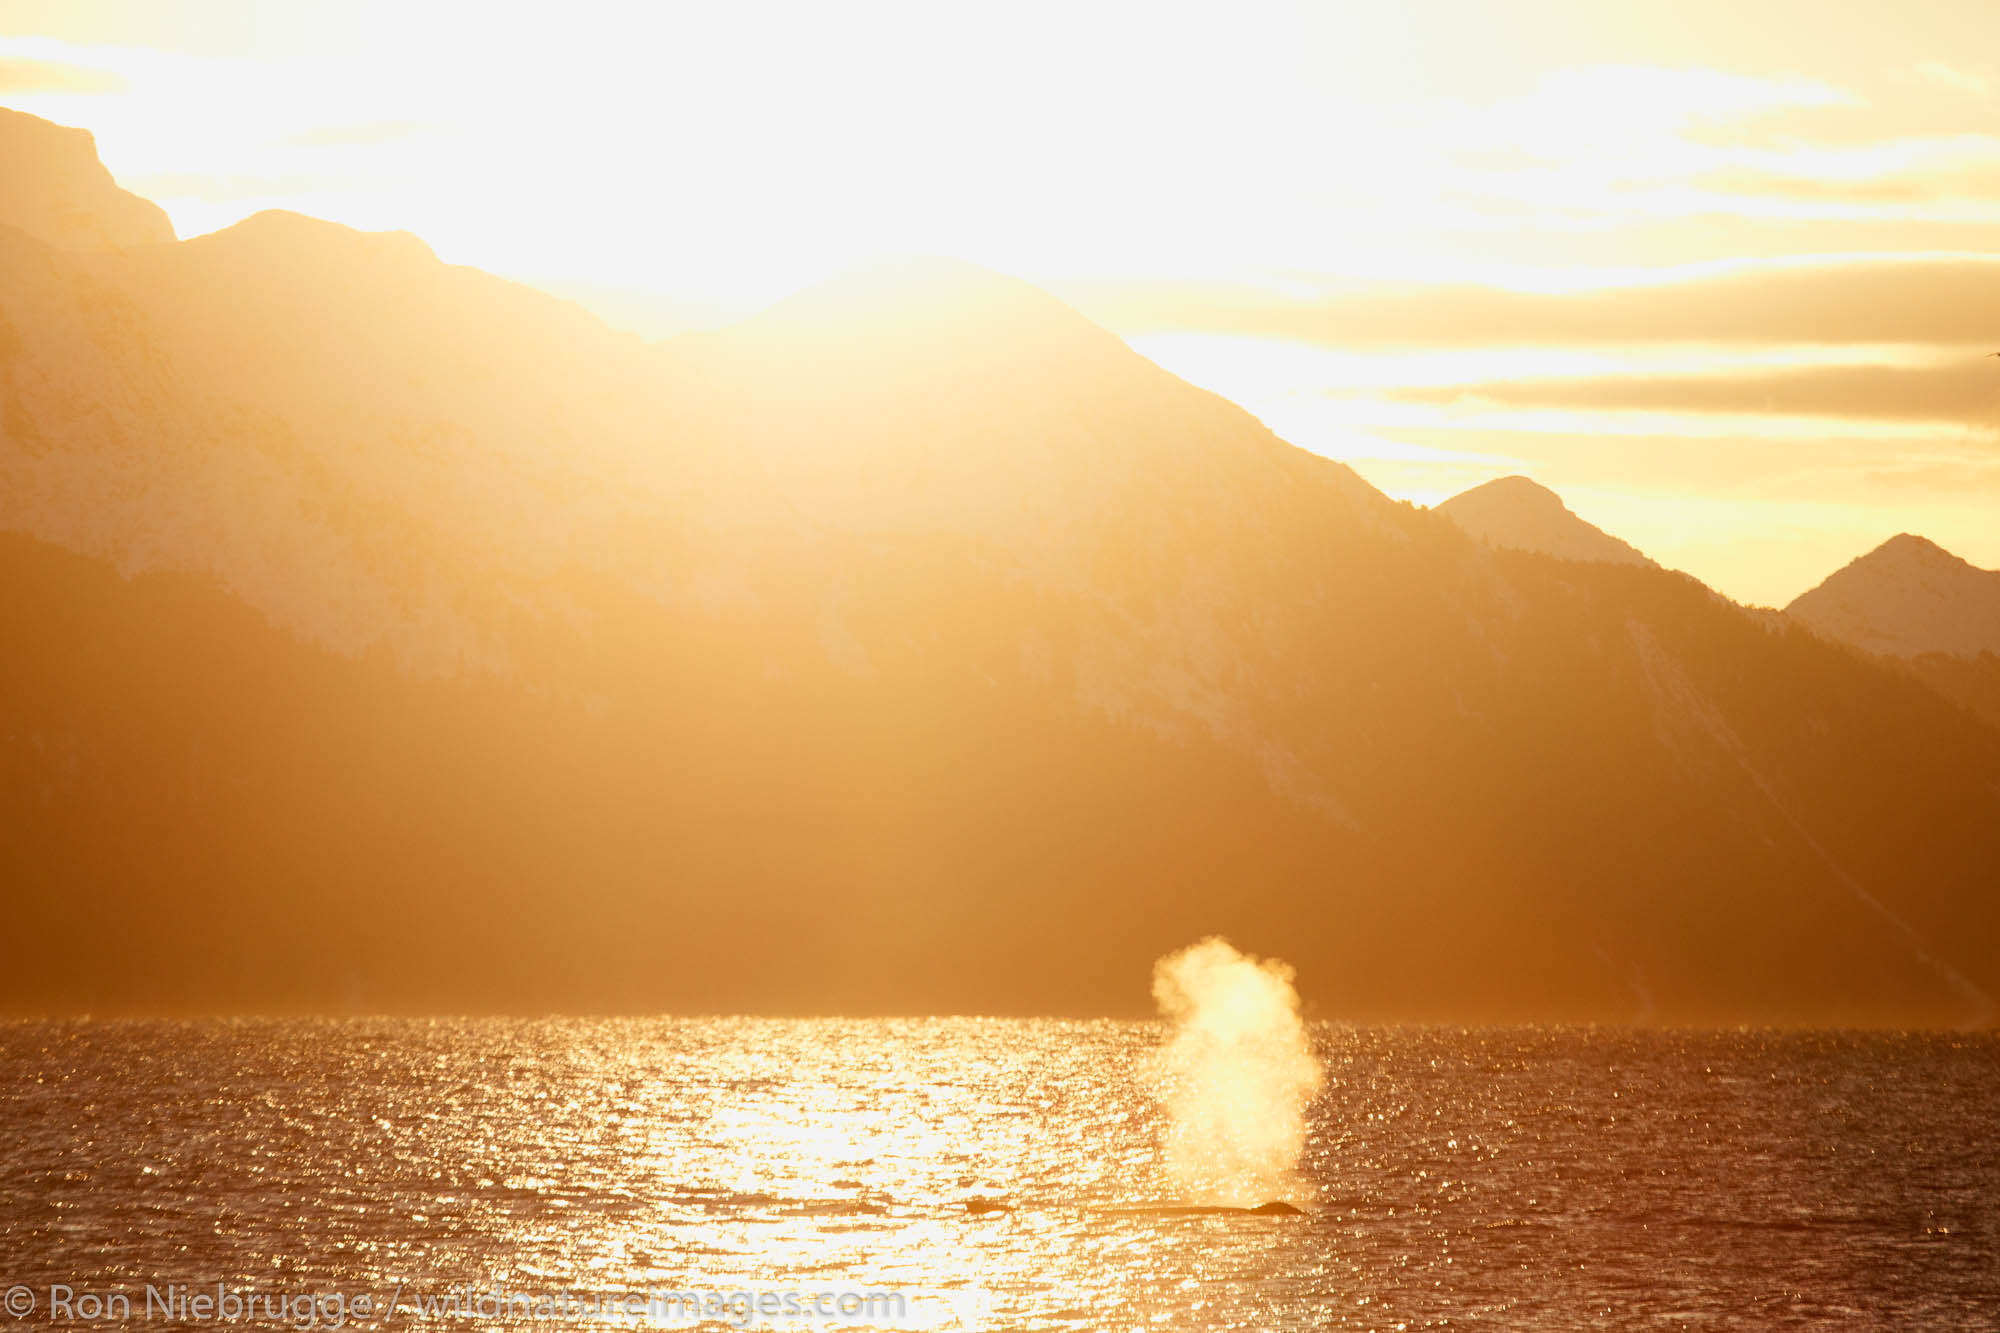 Humpback whale in Resurrection Bay, Seward, Alaska.